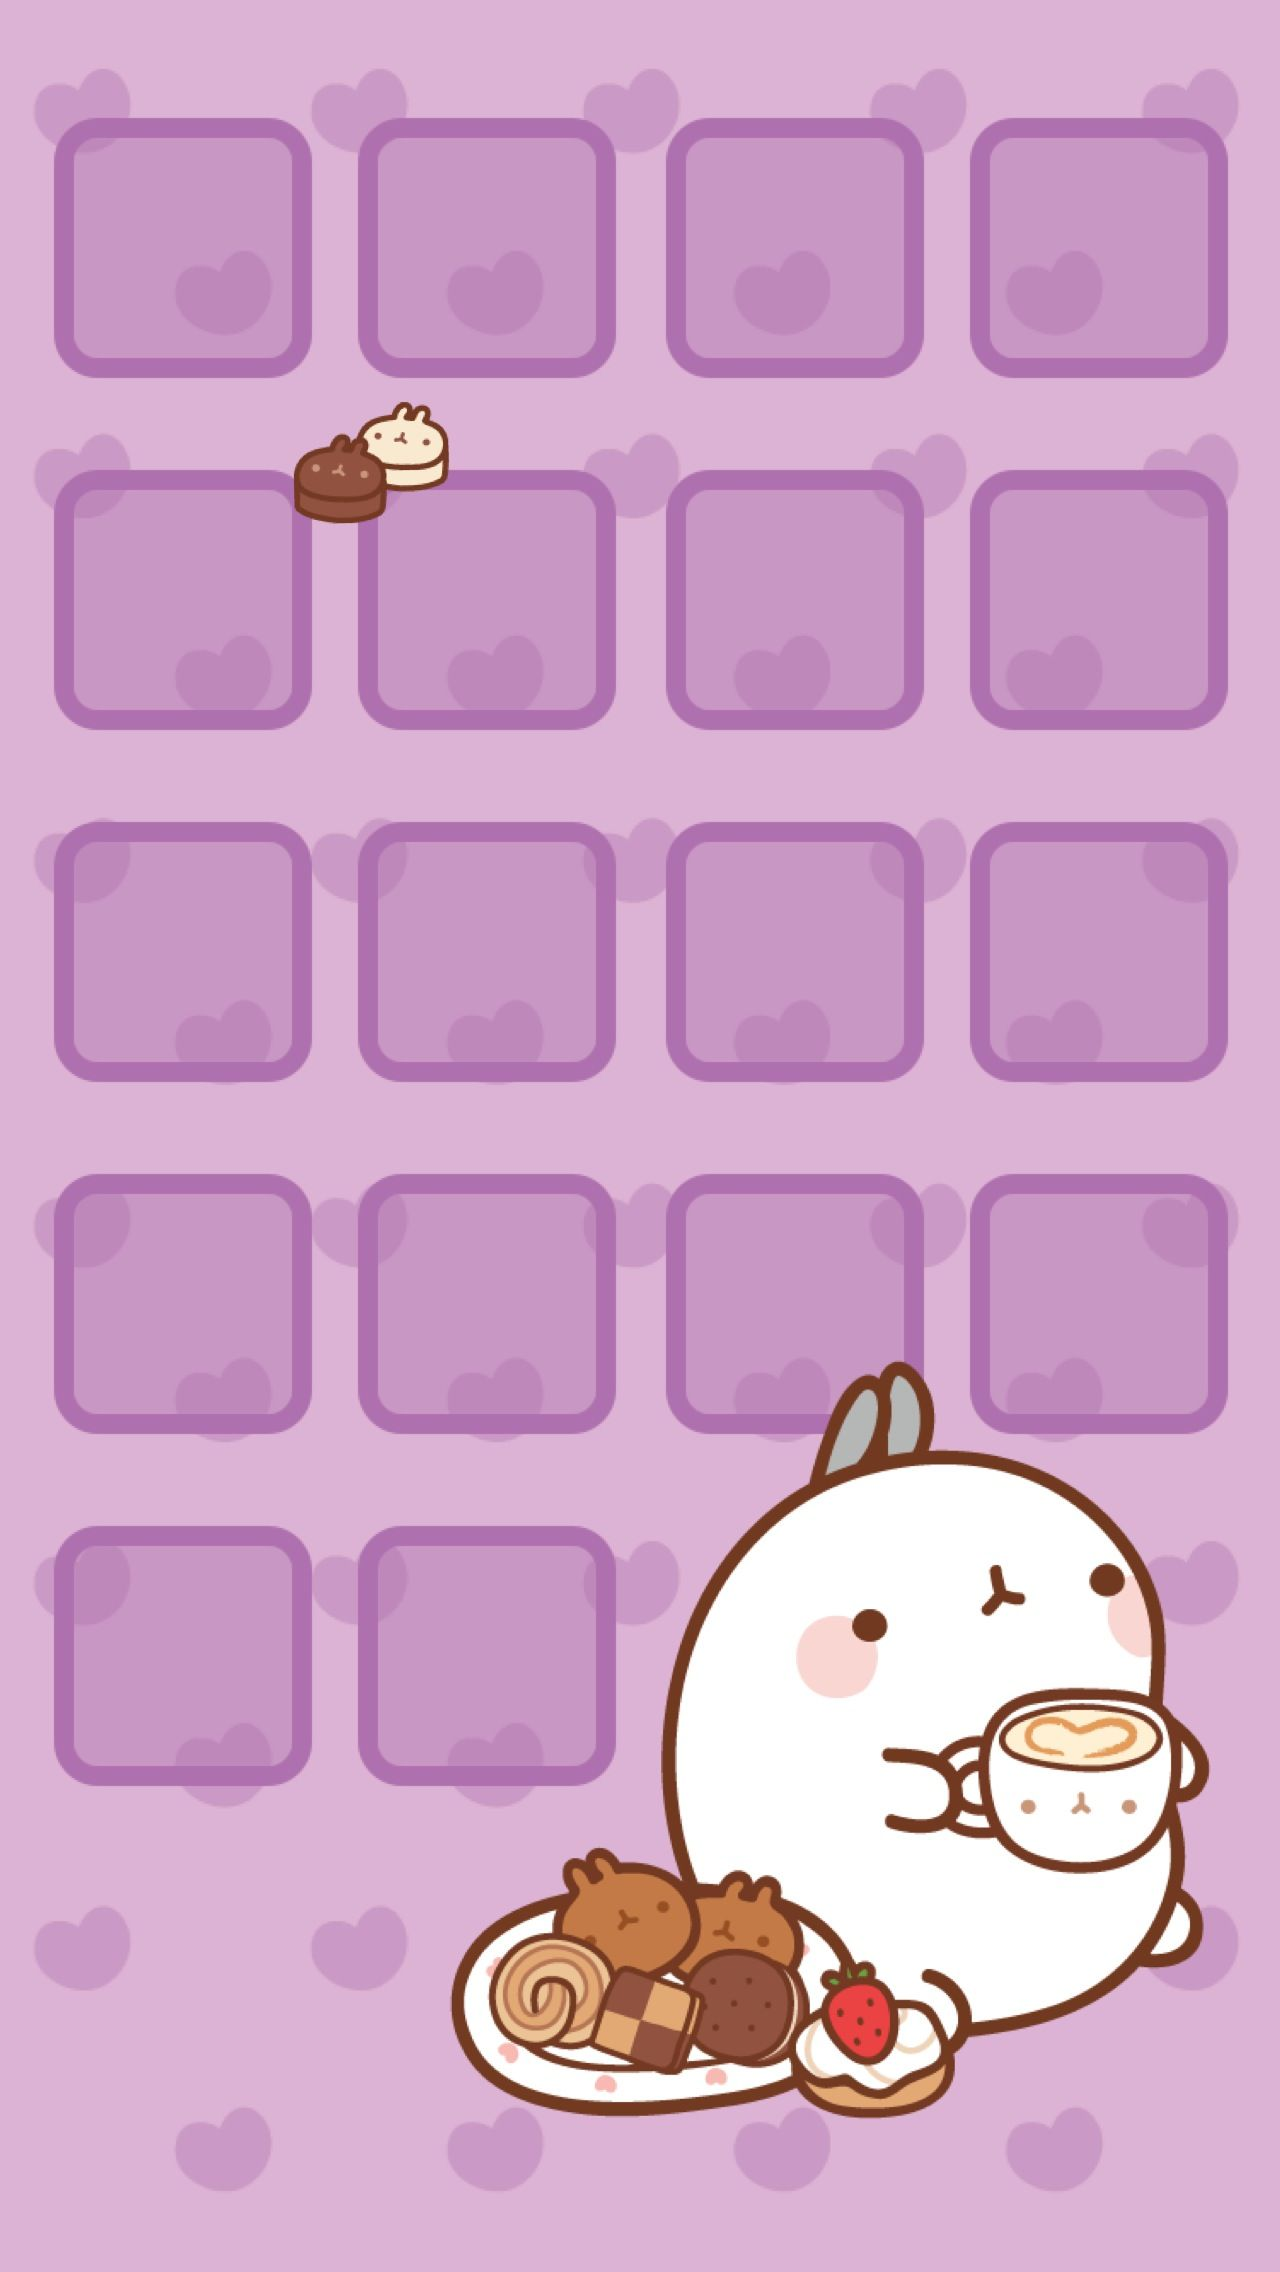 Pin Oleh Lishi Annati Di Kawaii Cute Wallpaper Lucu Kartun Fakta Zodiak